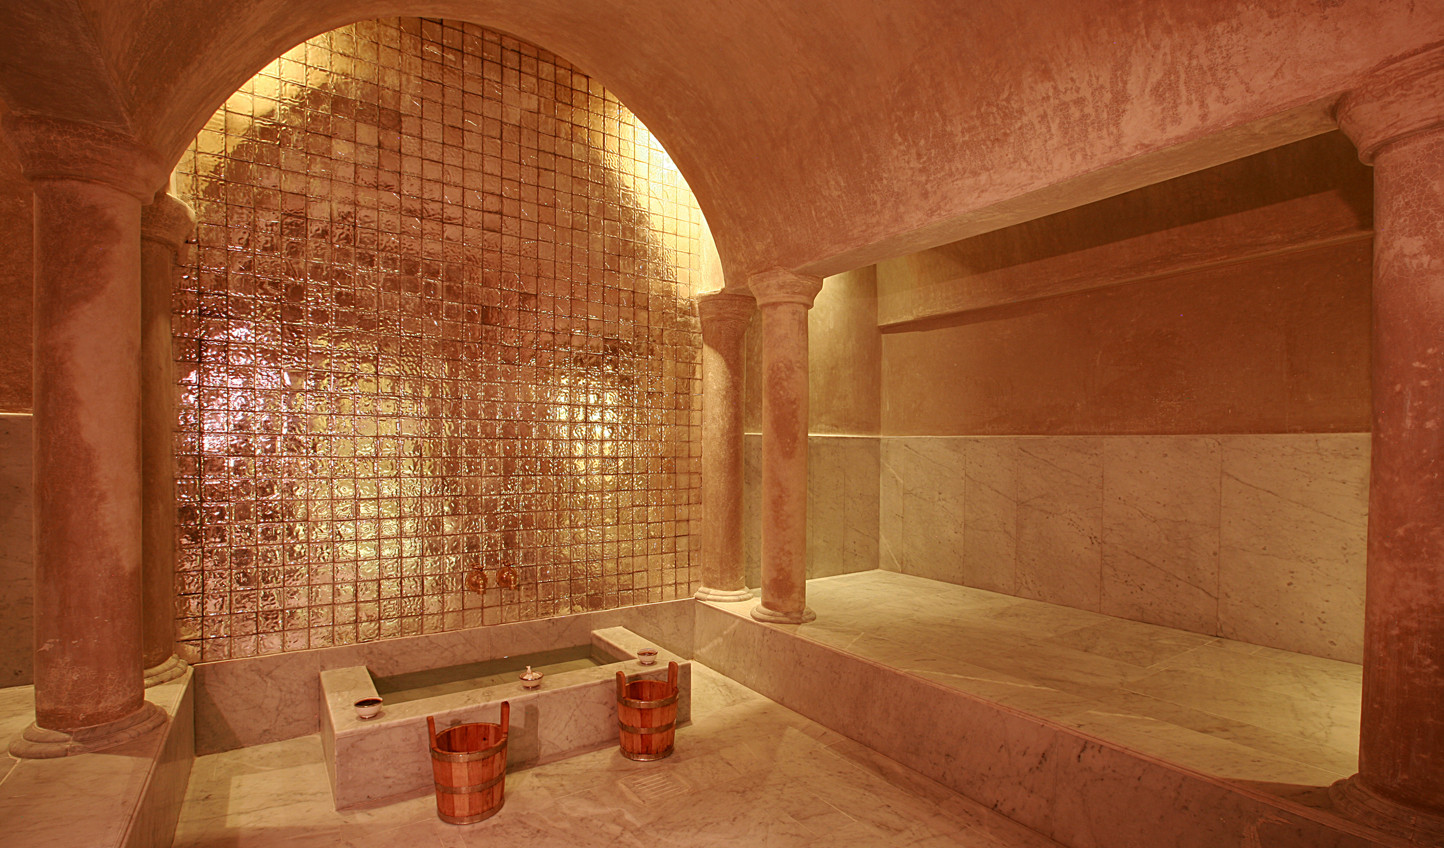 Shimmering tiles,. warm marble and oriental spices in your traditional hammam